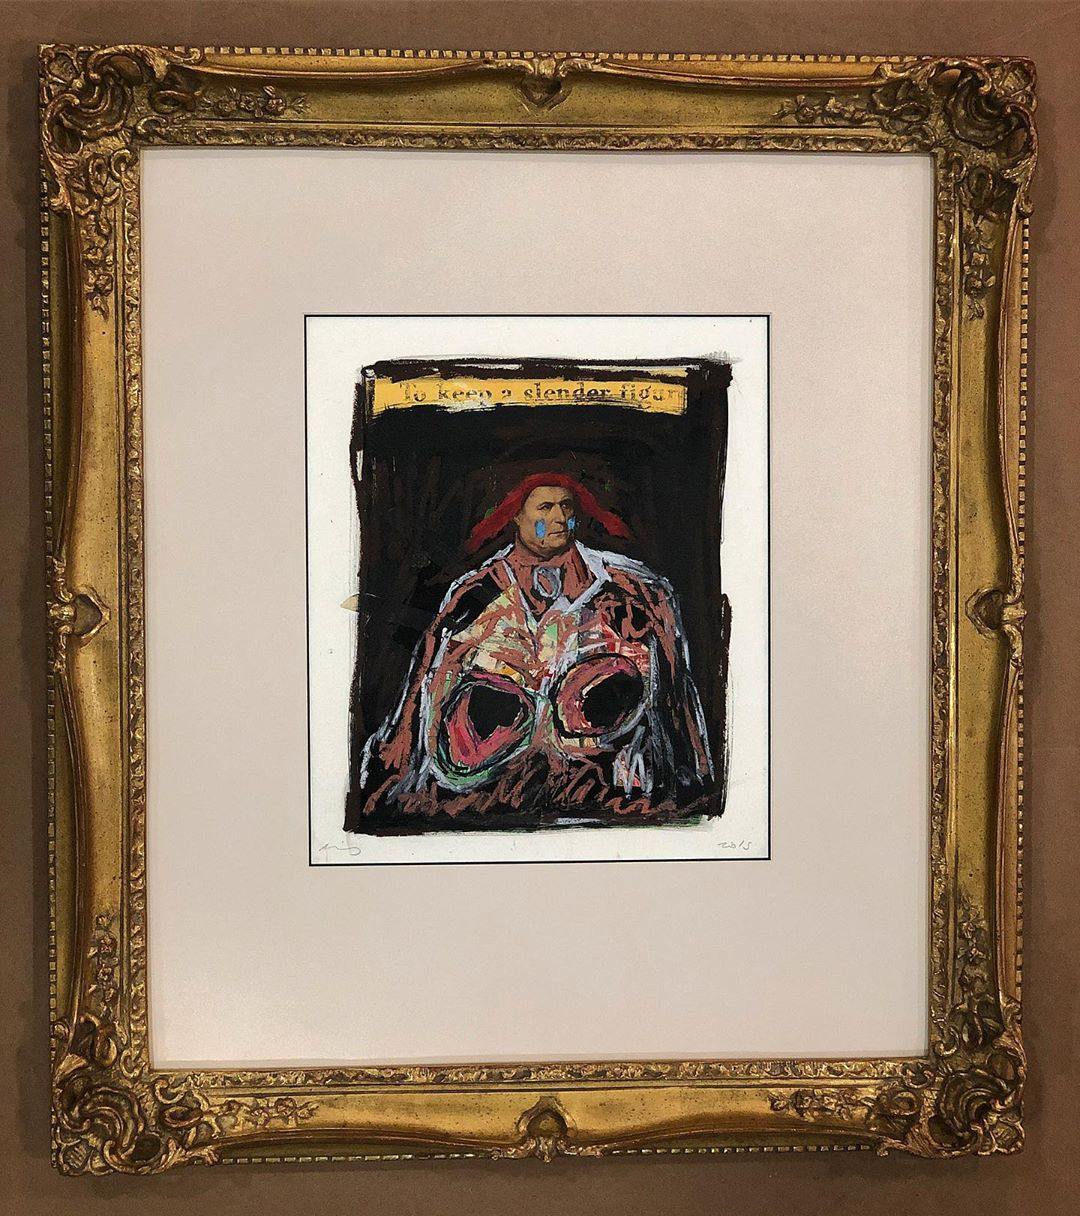 "Custom frame ""To keep a slender figure"" by David King Reuben"